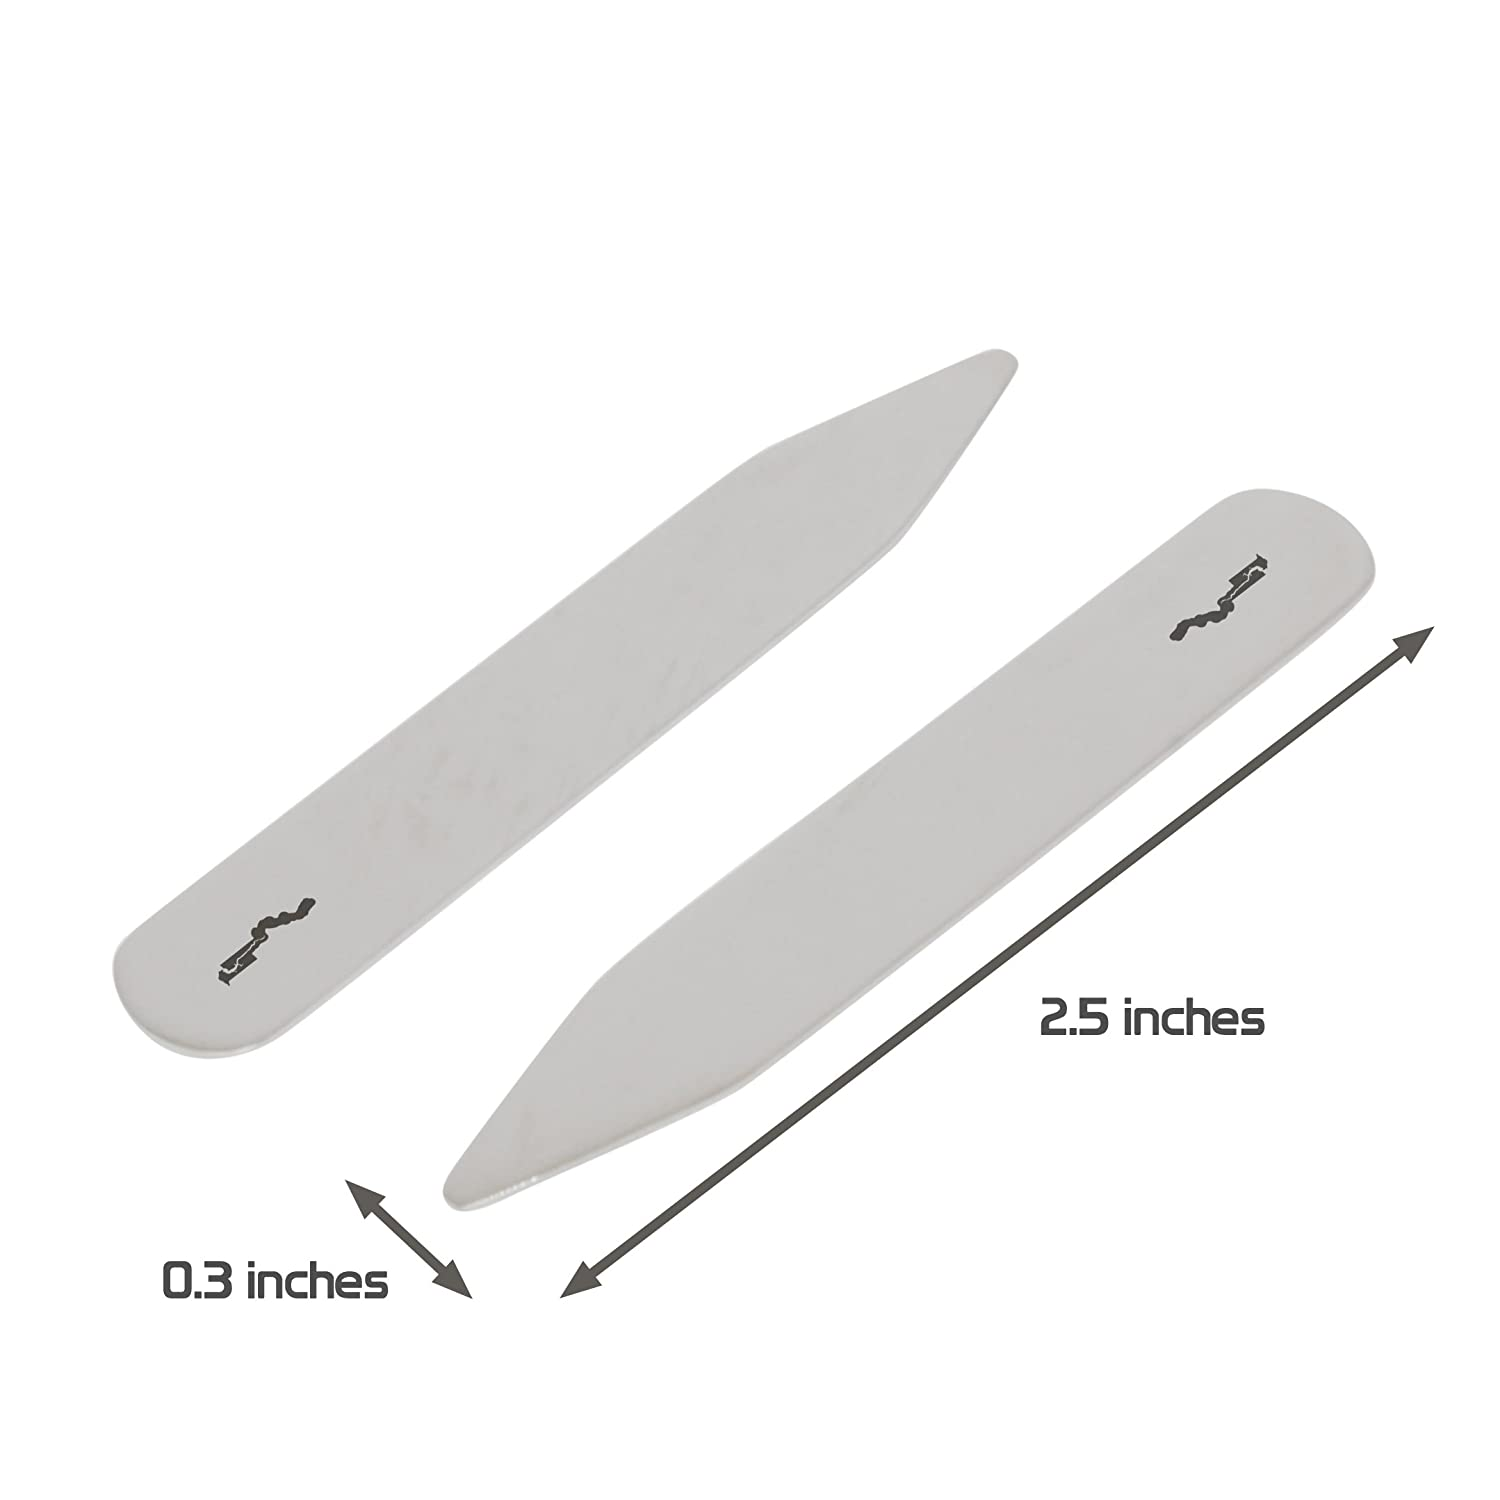 2.5 Inch Metal Collar Stiffeners Made In USA MODERN GOODS SHOP Stainless Steel Collar Stays With Laser Engraved Gambia Design